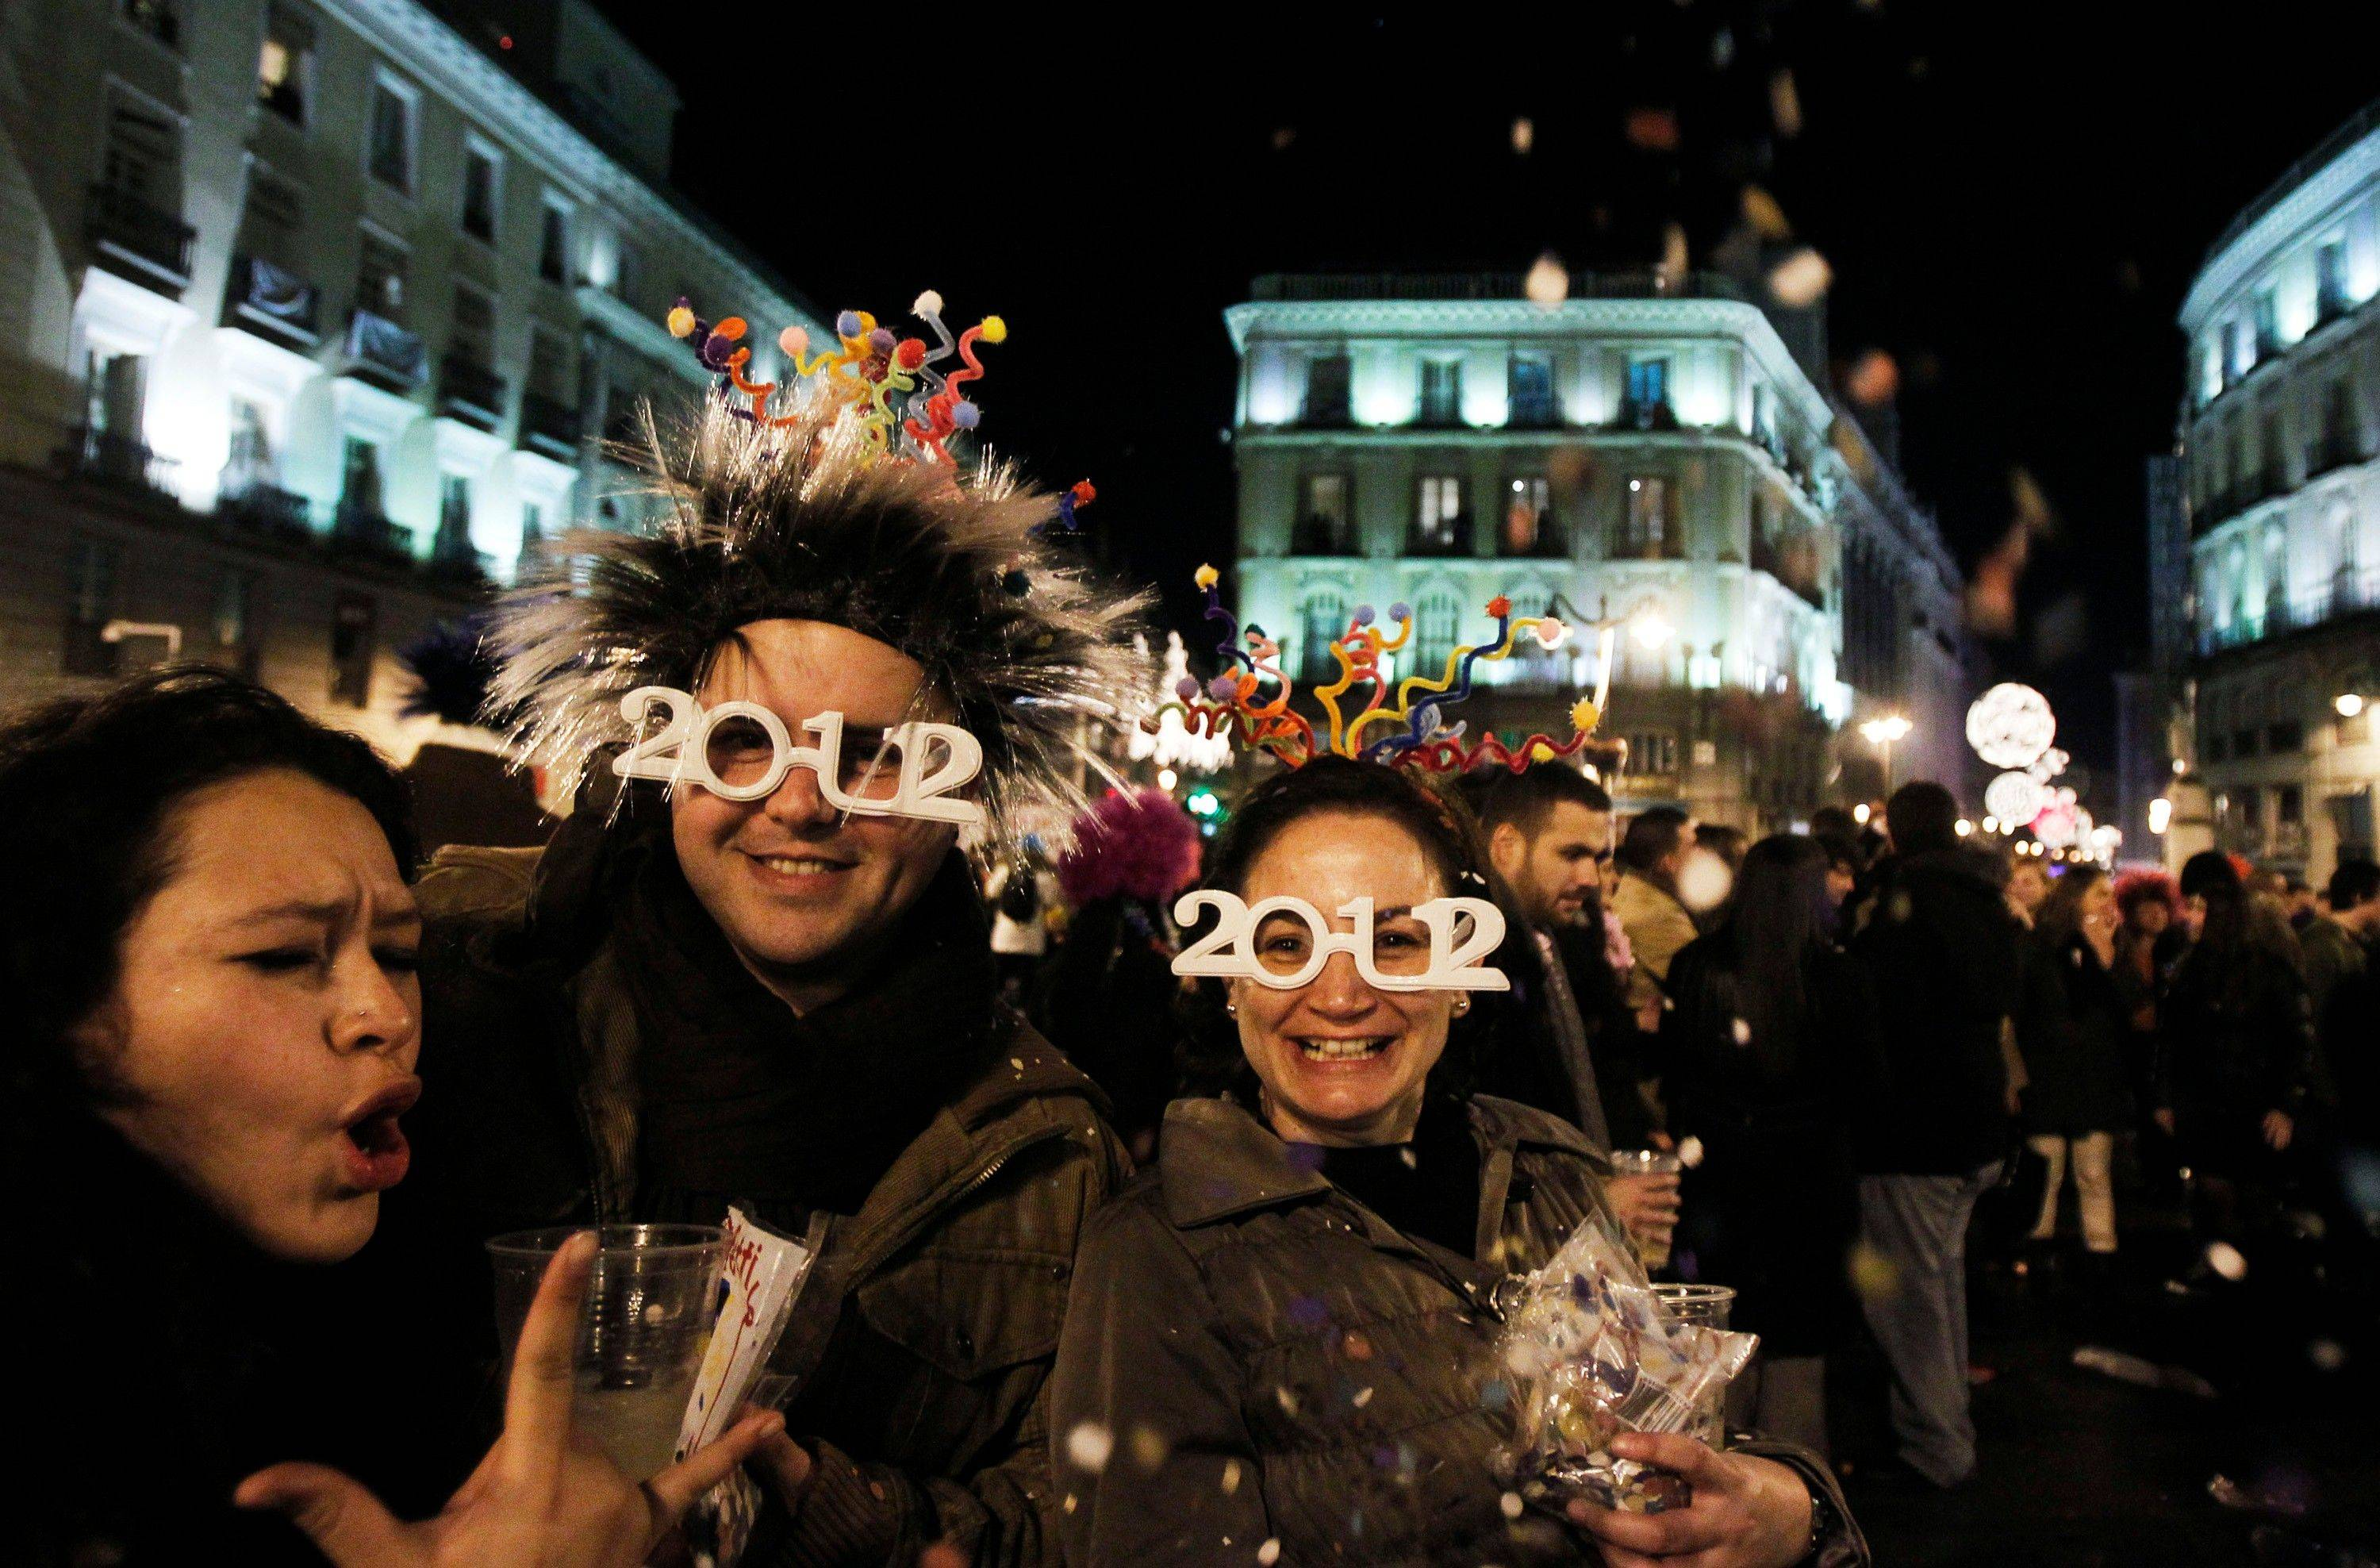 People gather for New Year's celebrations in Madrid, Spain, Sunday, Jan. 1, 2012.